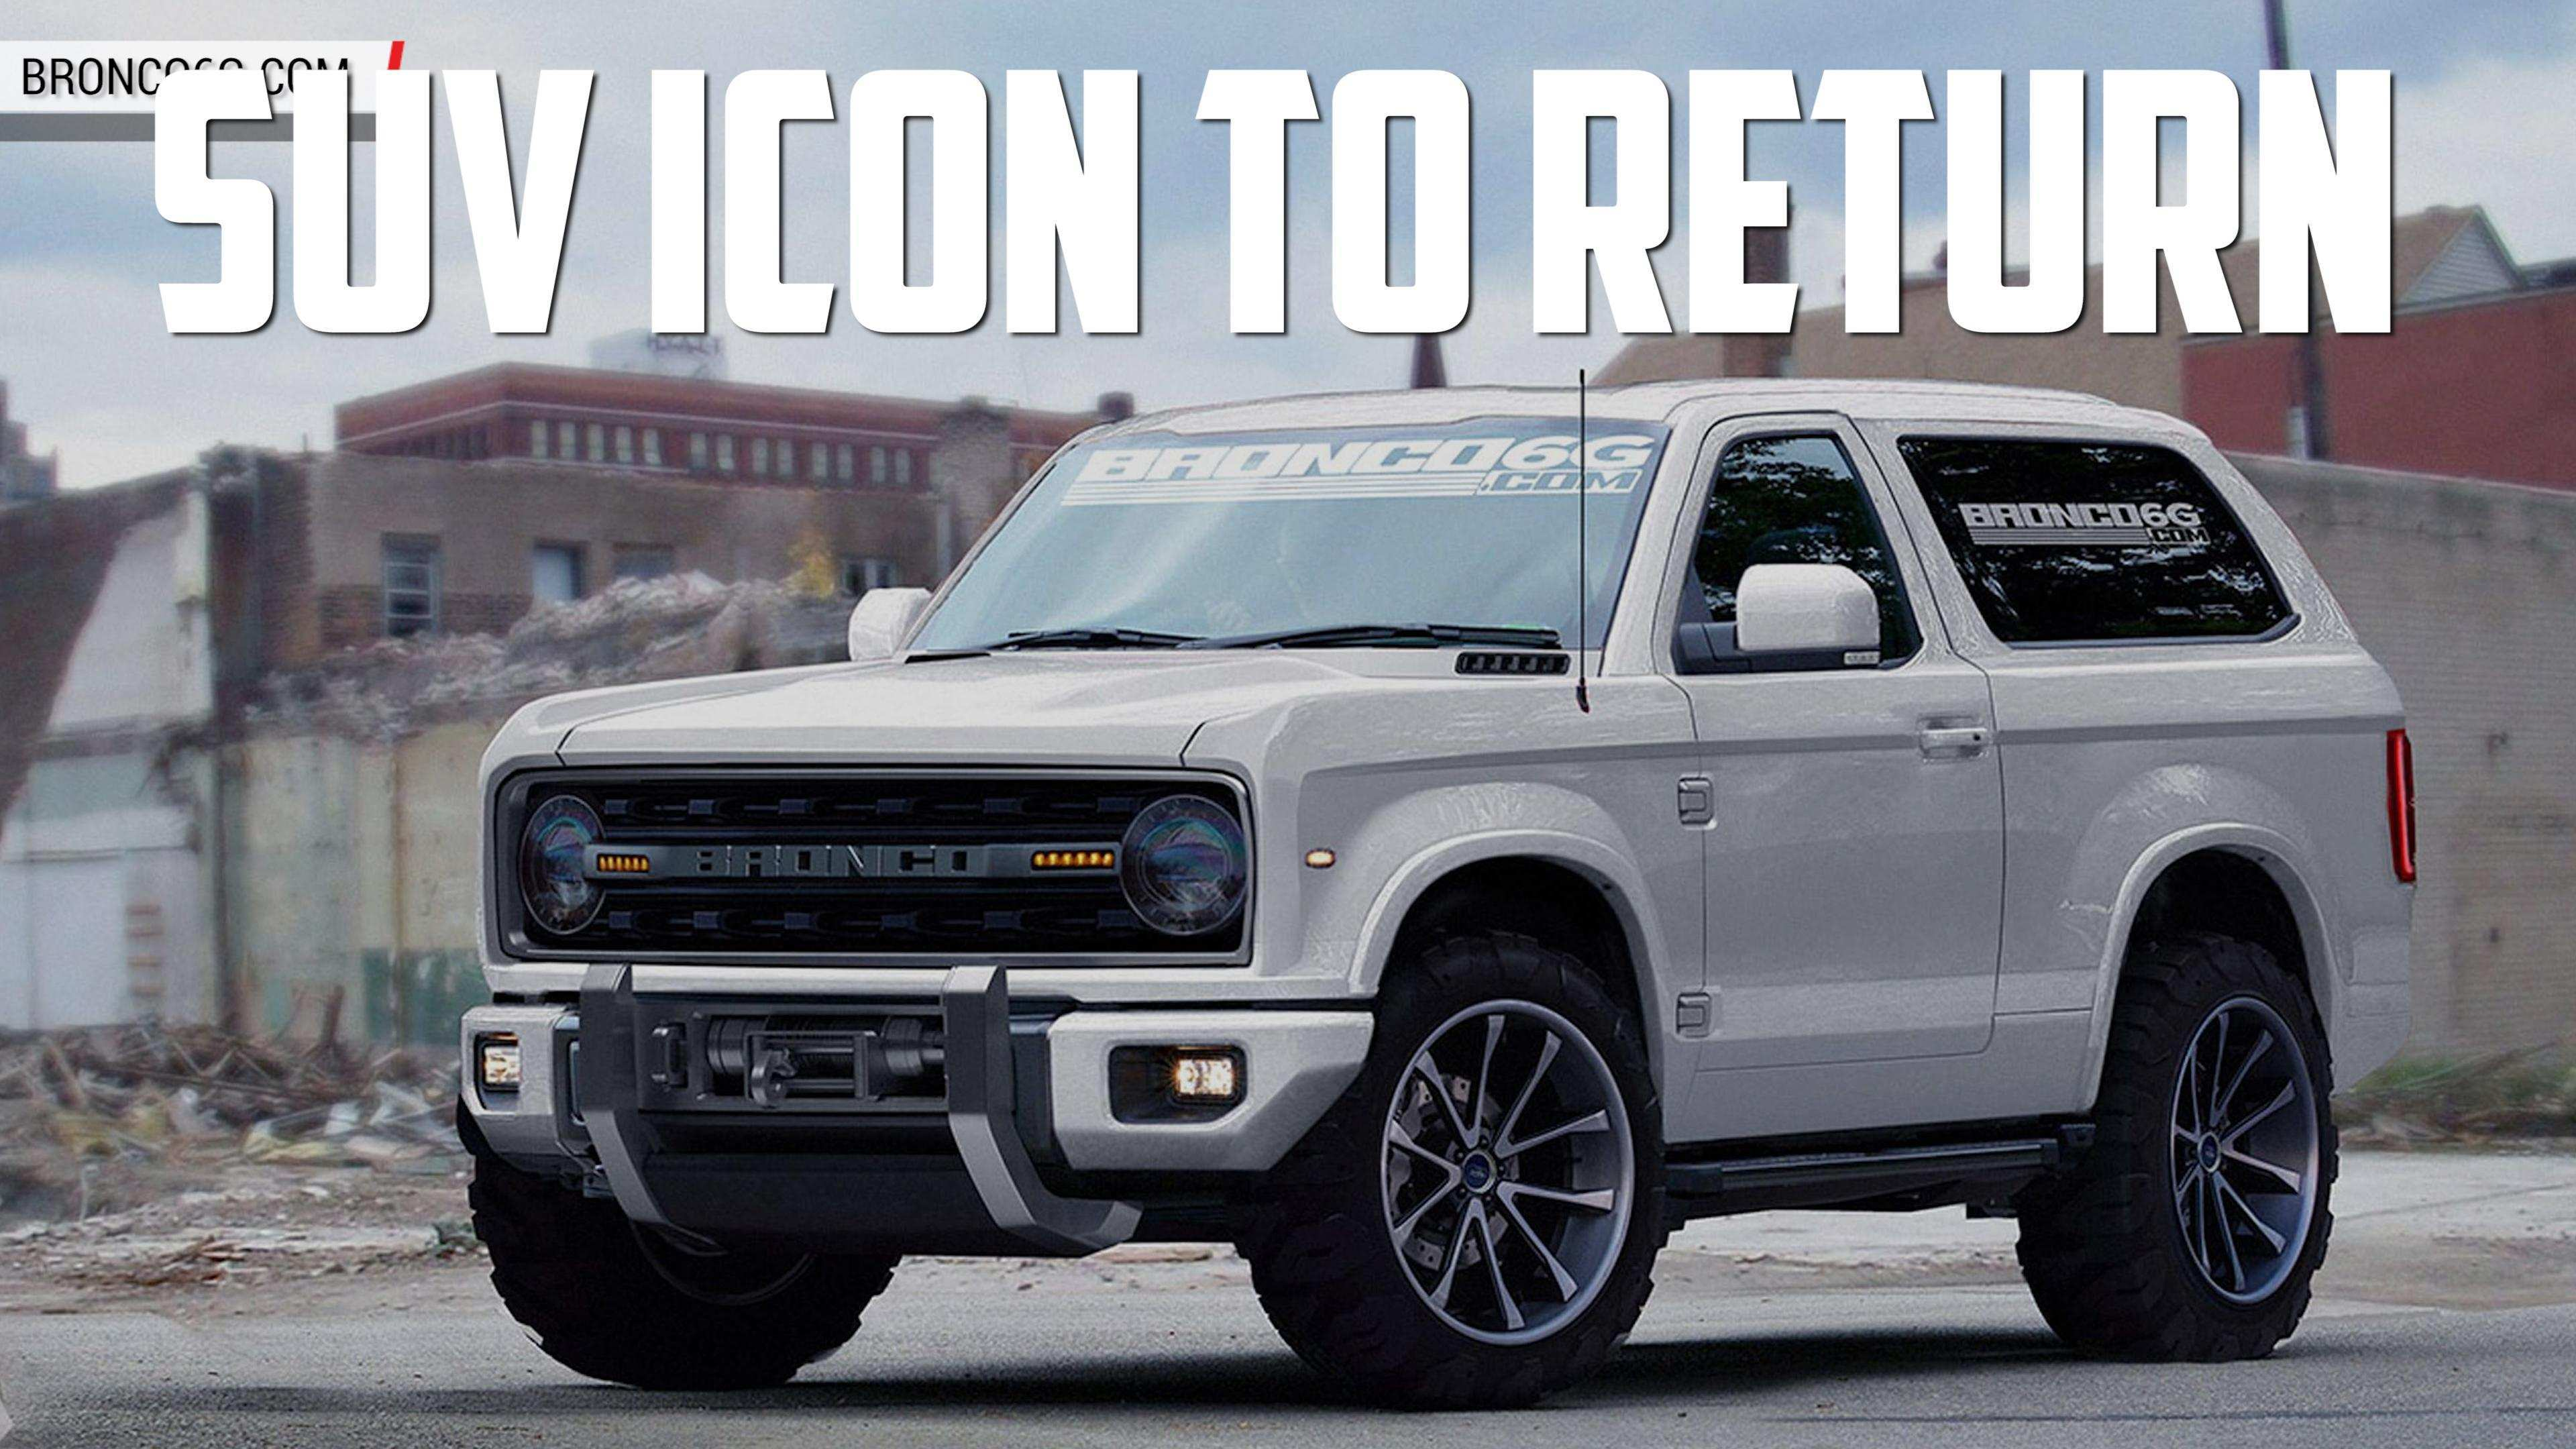 74 Best Review The 2019 Ford Bronco Interior Review Rumors for The 2019 Ford Bronco Interior Review